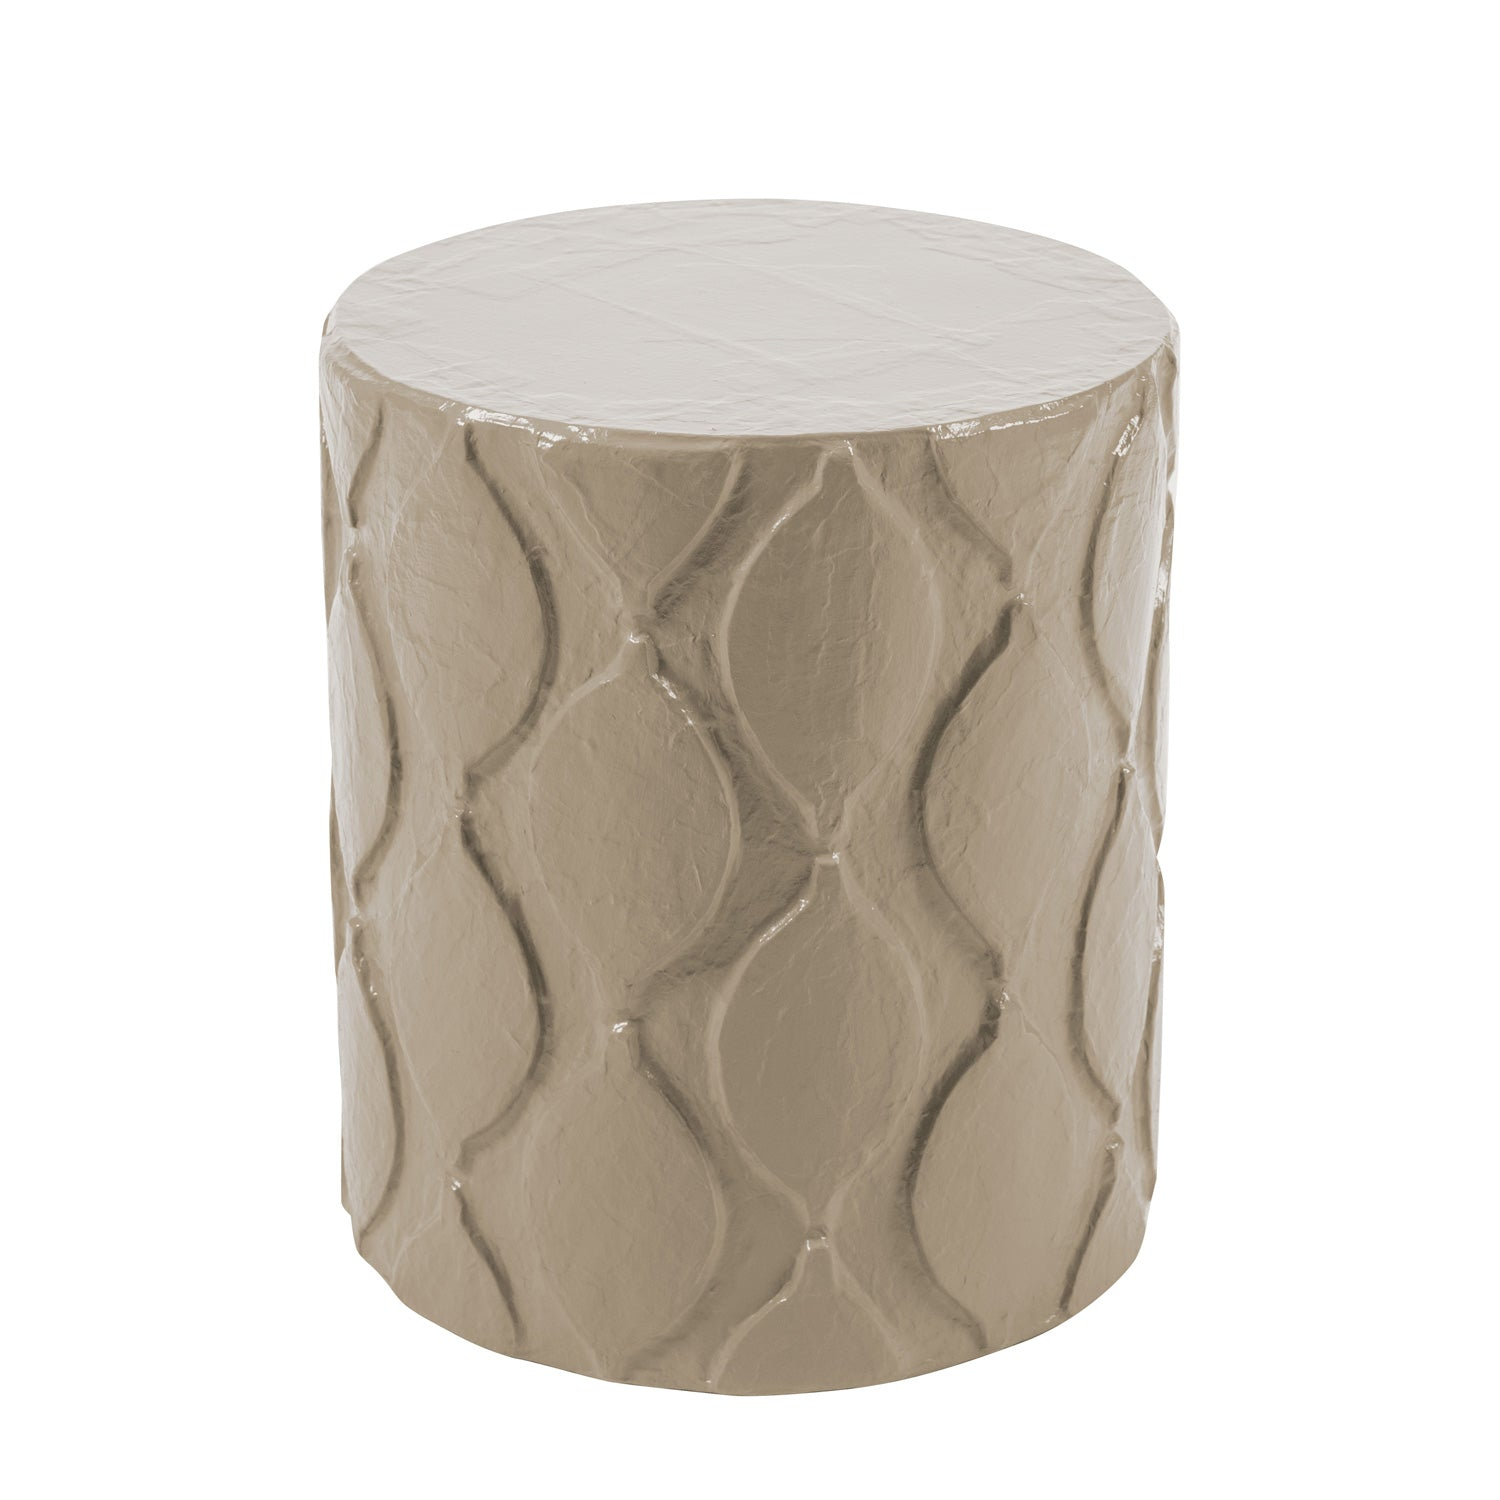 stylish stool/accent table with Moroccan inspired design